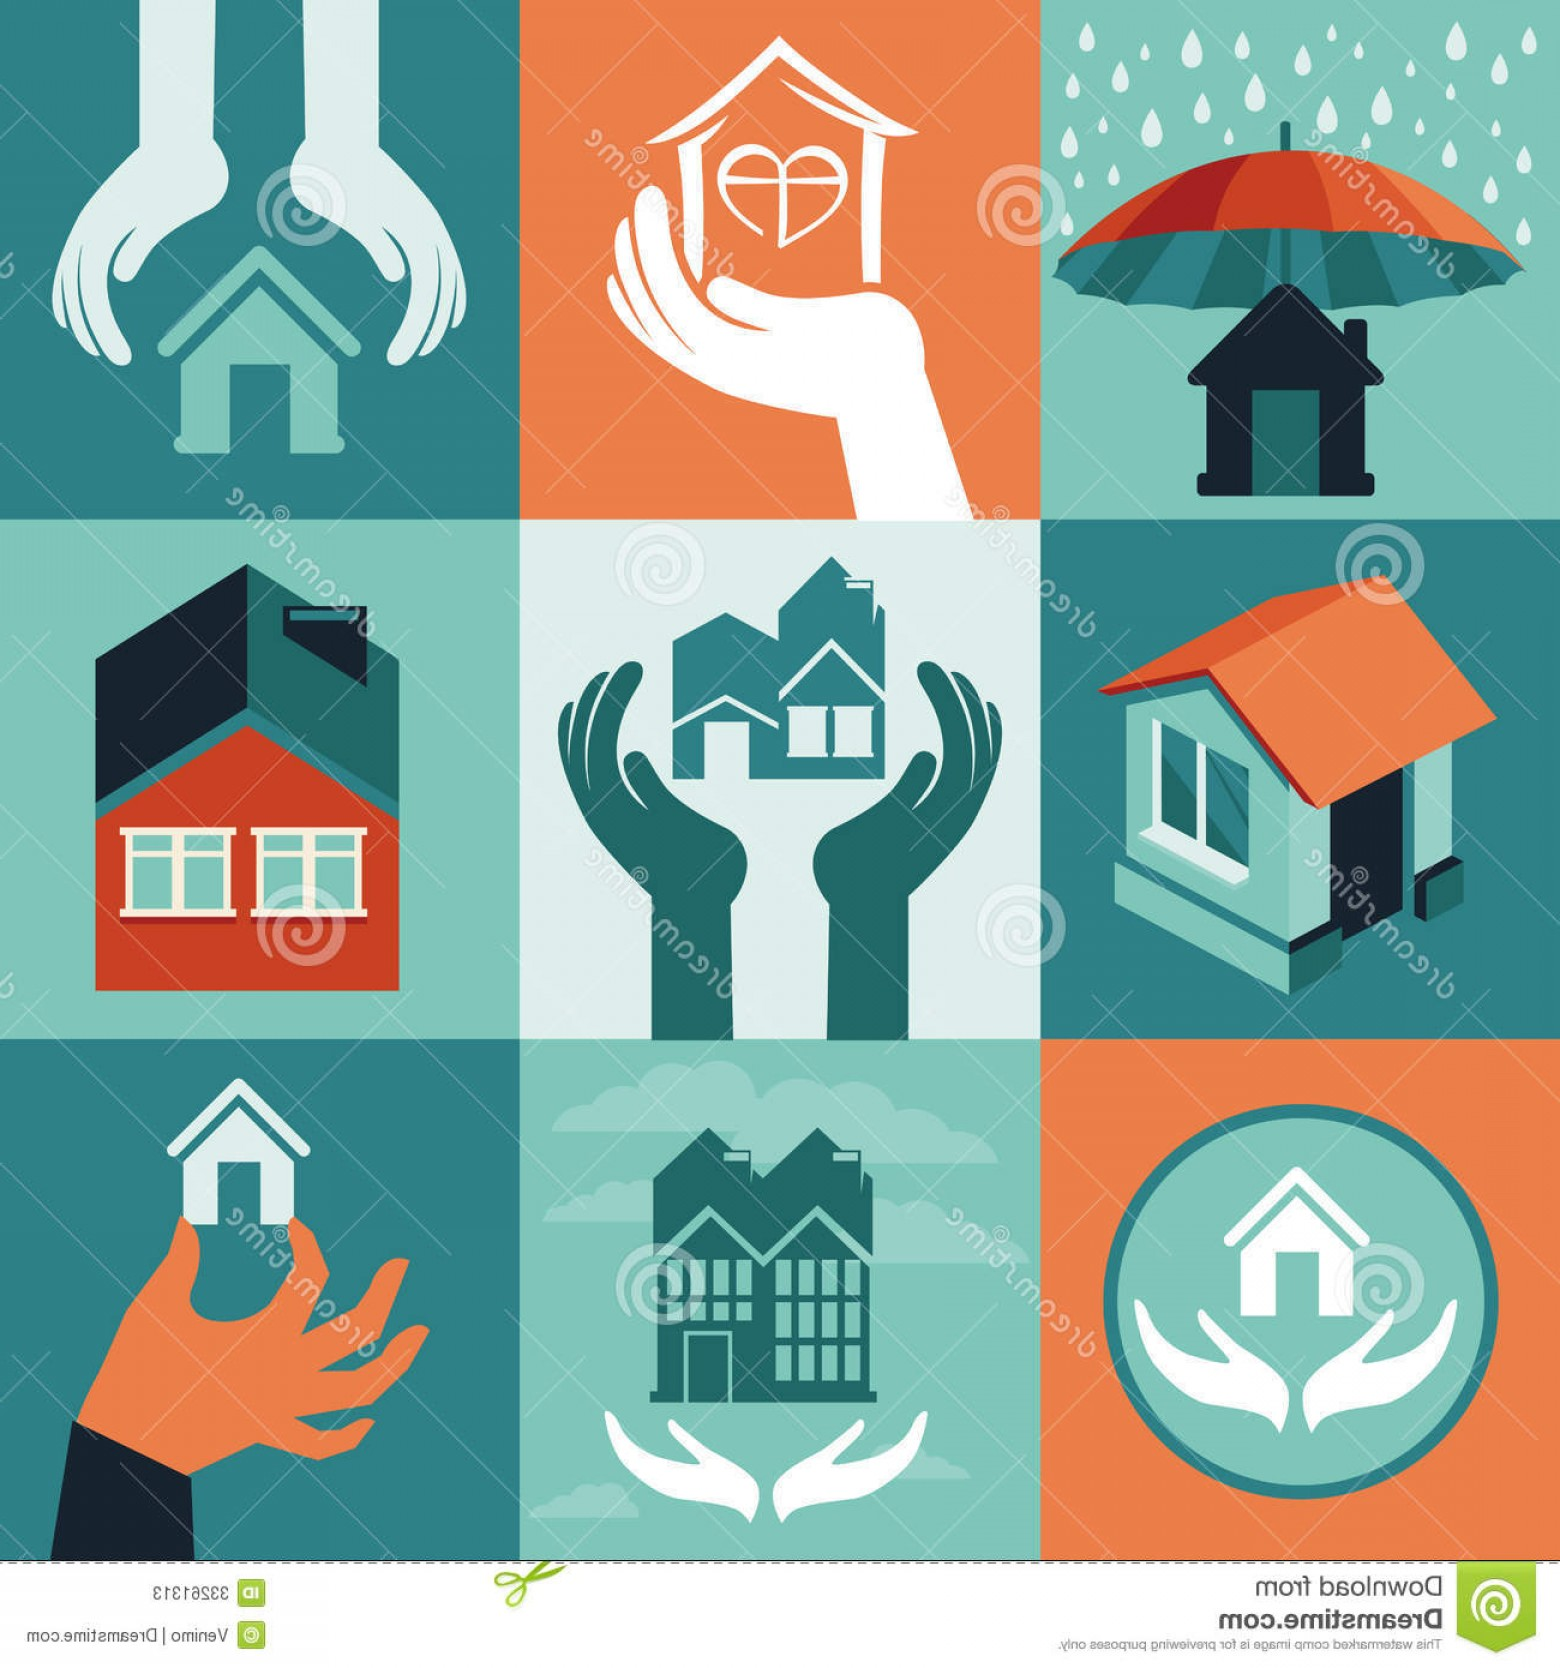 Vector Insurance: Stock Photos Vector House Insurance Set Flat Icons Banners Image